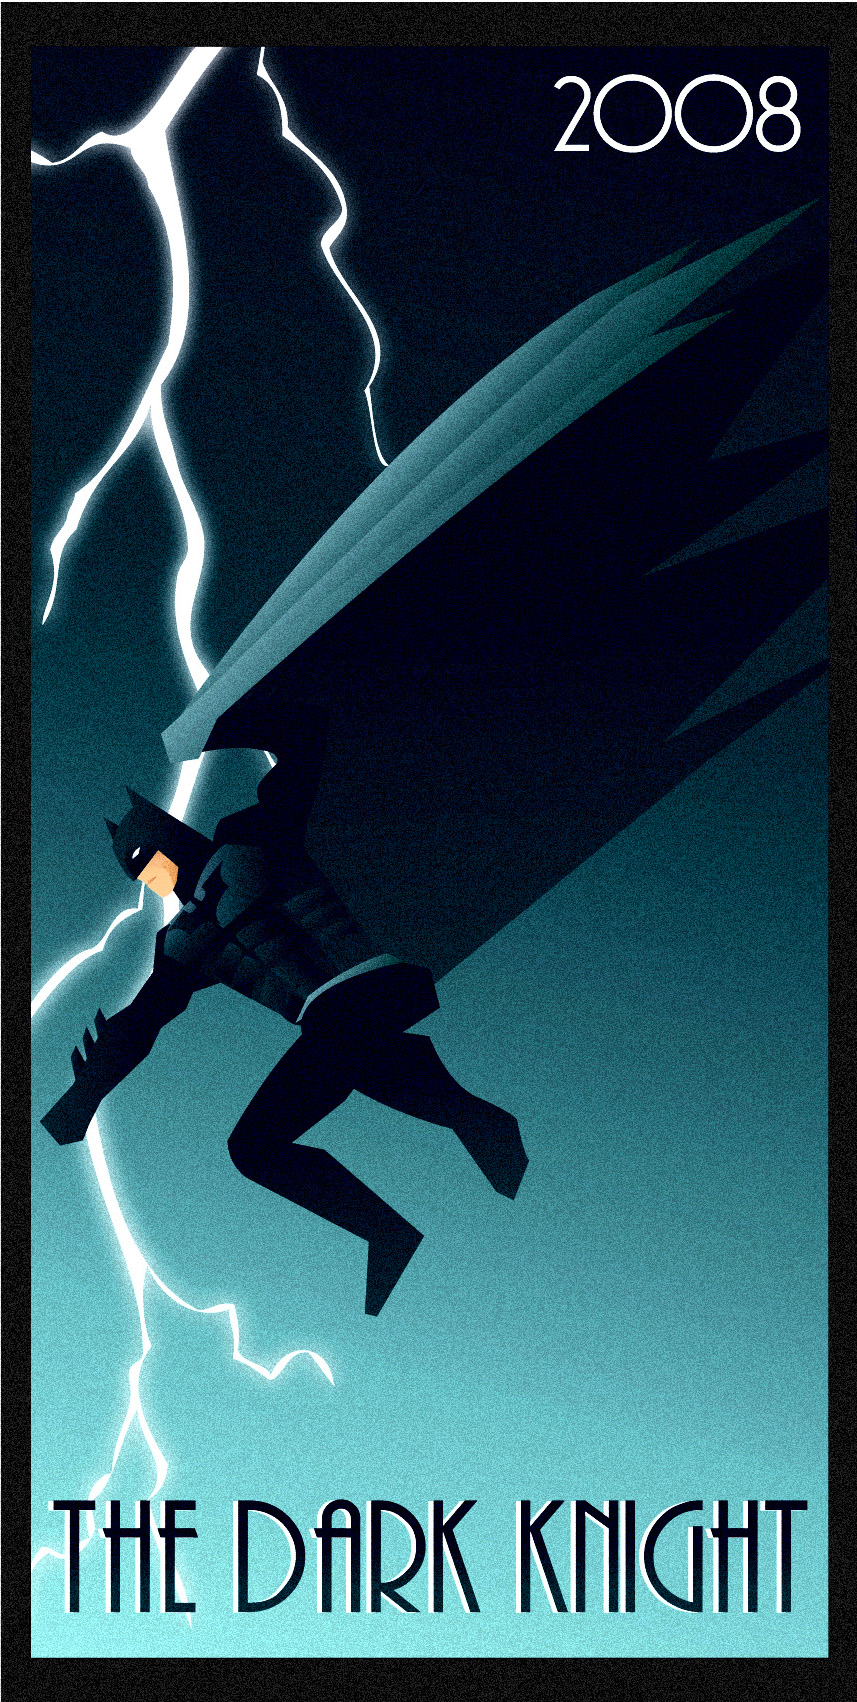 THE DARK KNIGHT art deco by rodolforever